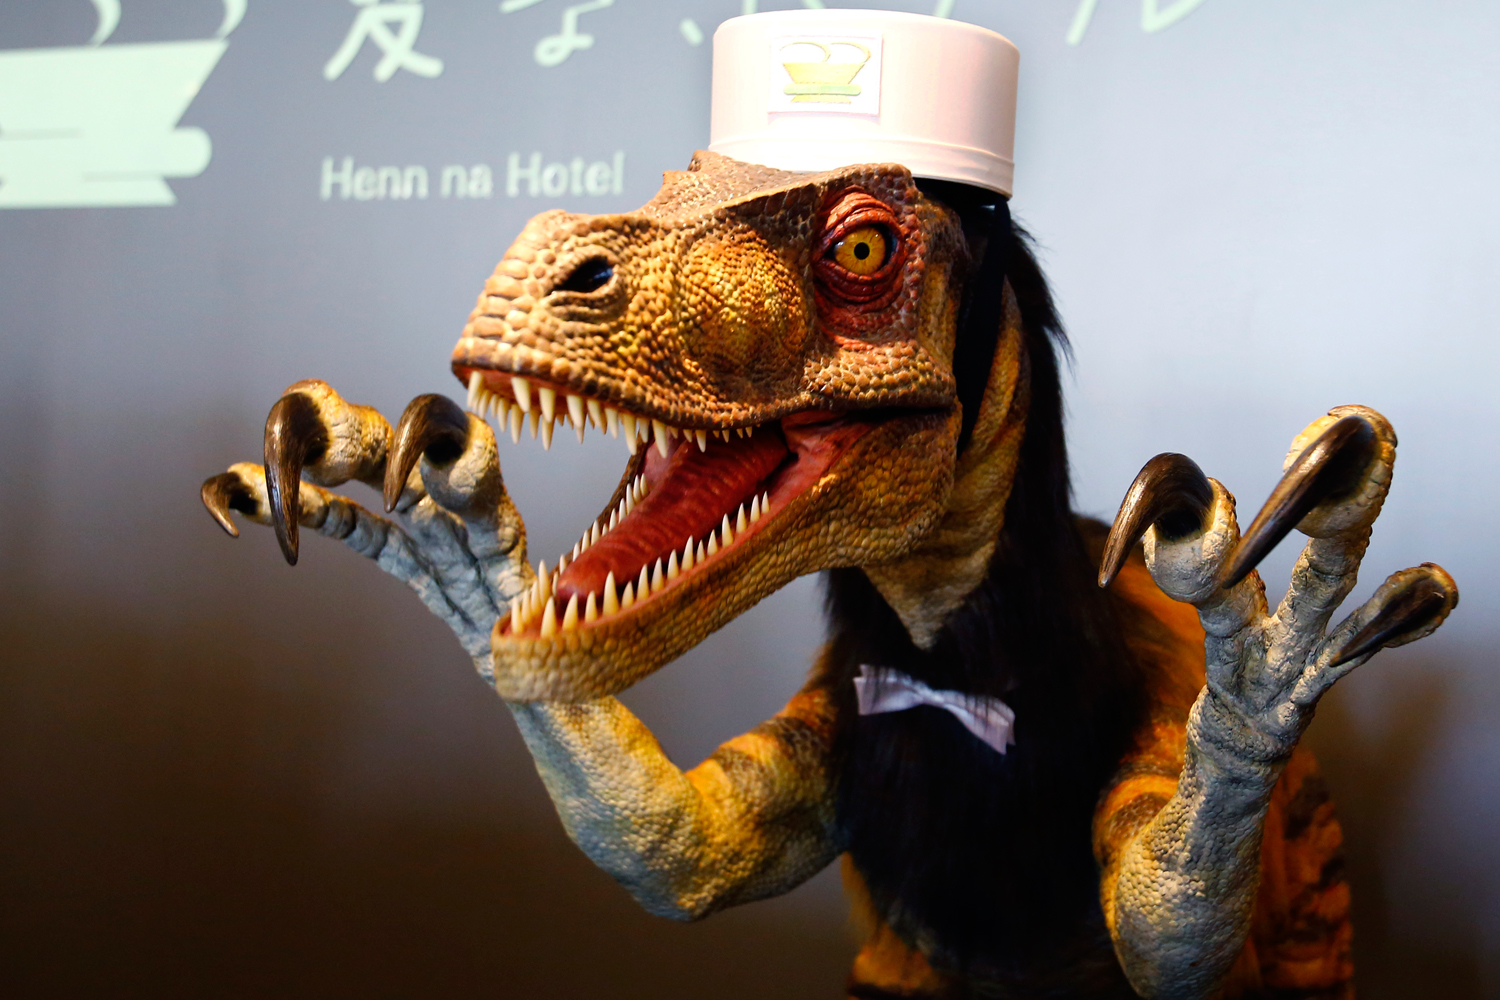 A receptionist dinosaur robot performs at the new robot hotel, aptly called Henn na Hotel or Weird Hotel, in Sasebo, southwestern Japan, July 15, 2015.